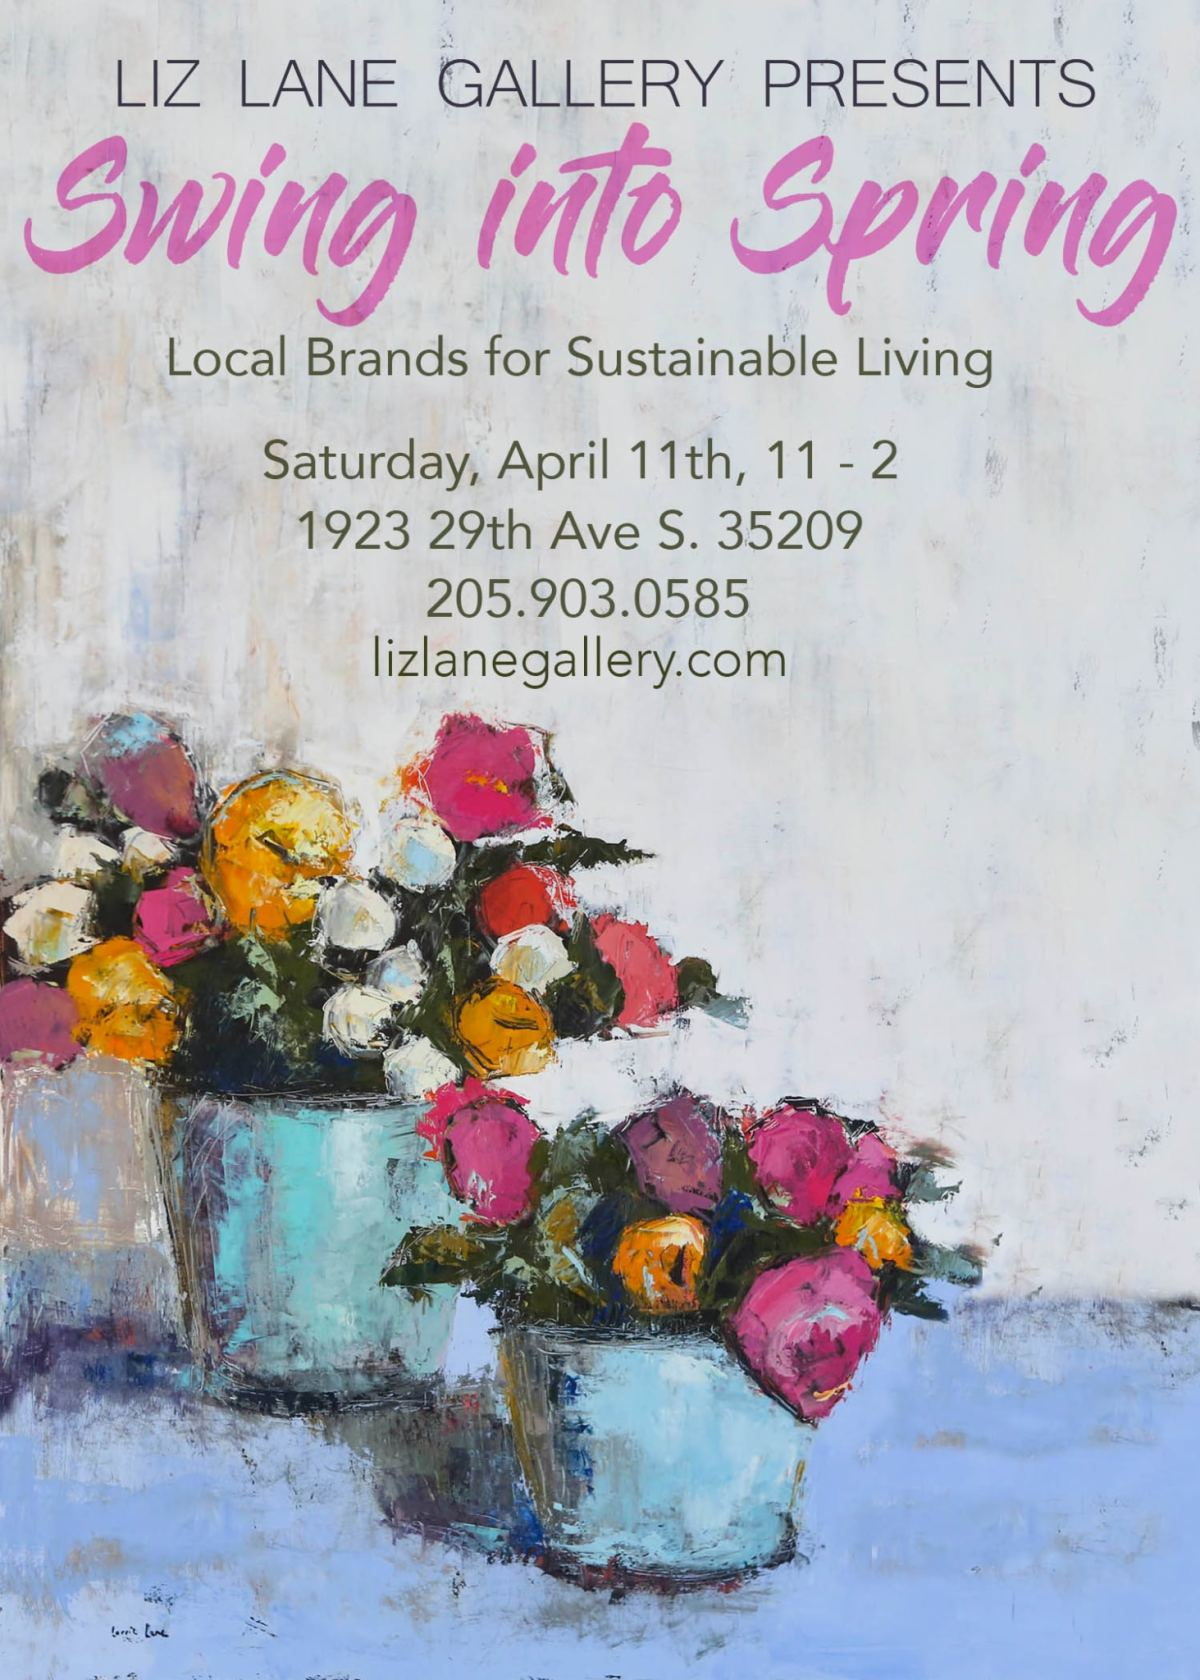 Swing into Spring; Local Brands for Sustainable Living